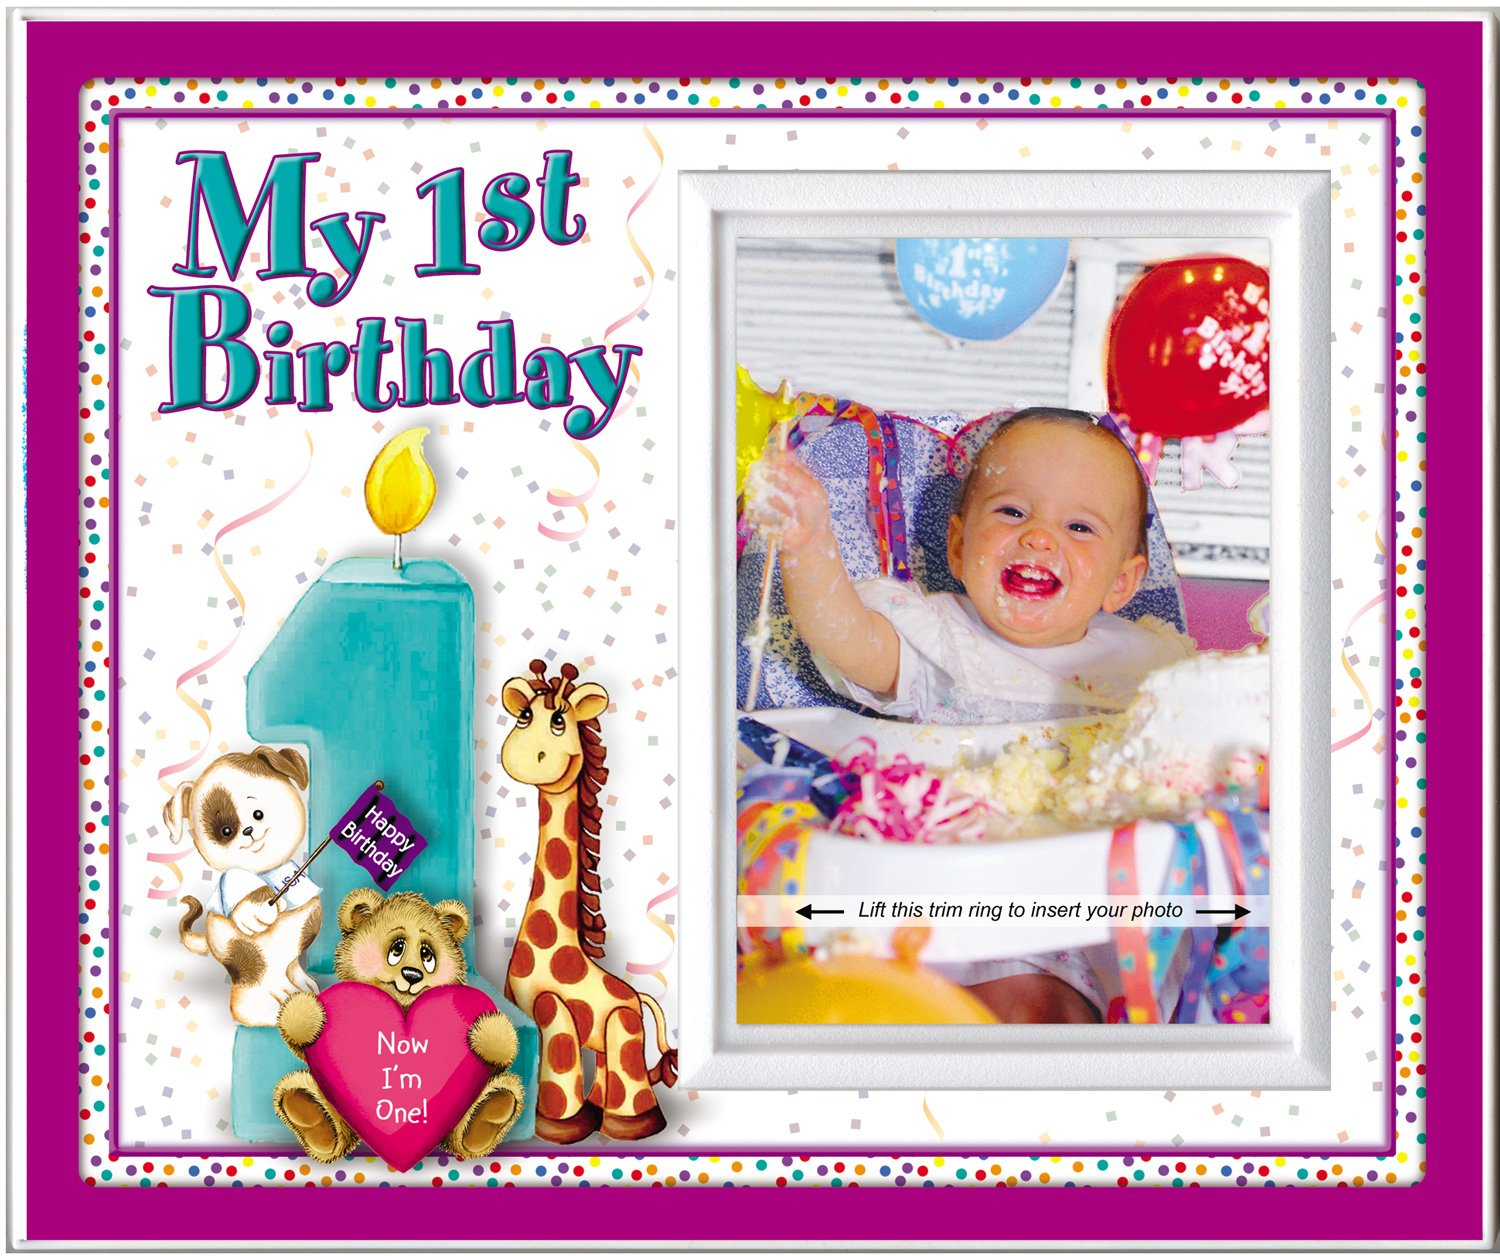 Amazon.com : My First Birthday - Picture Frame Gift : Childrens ...